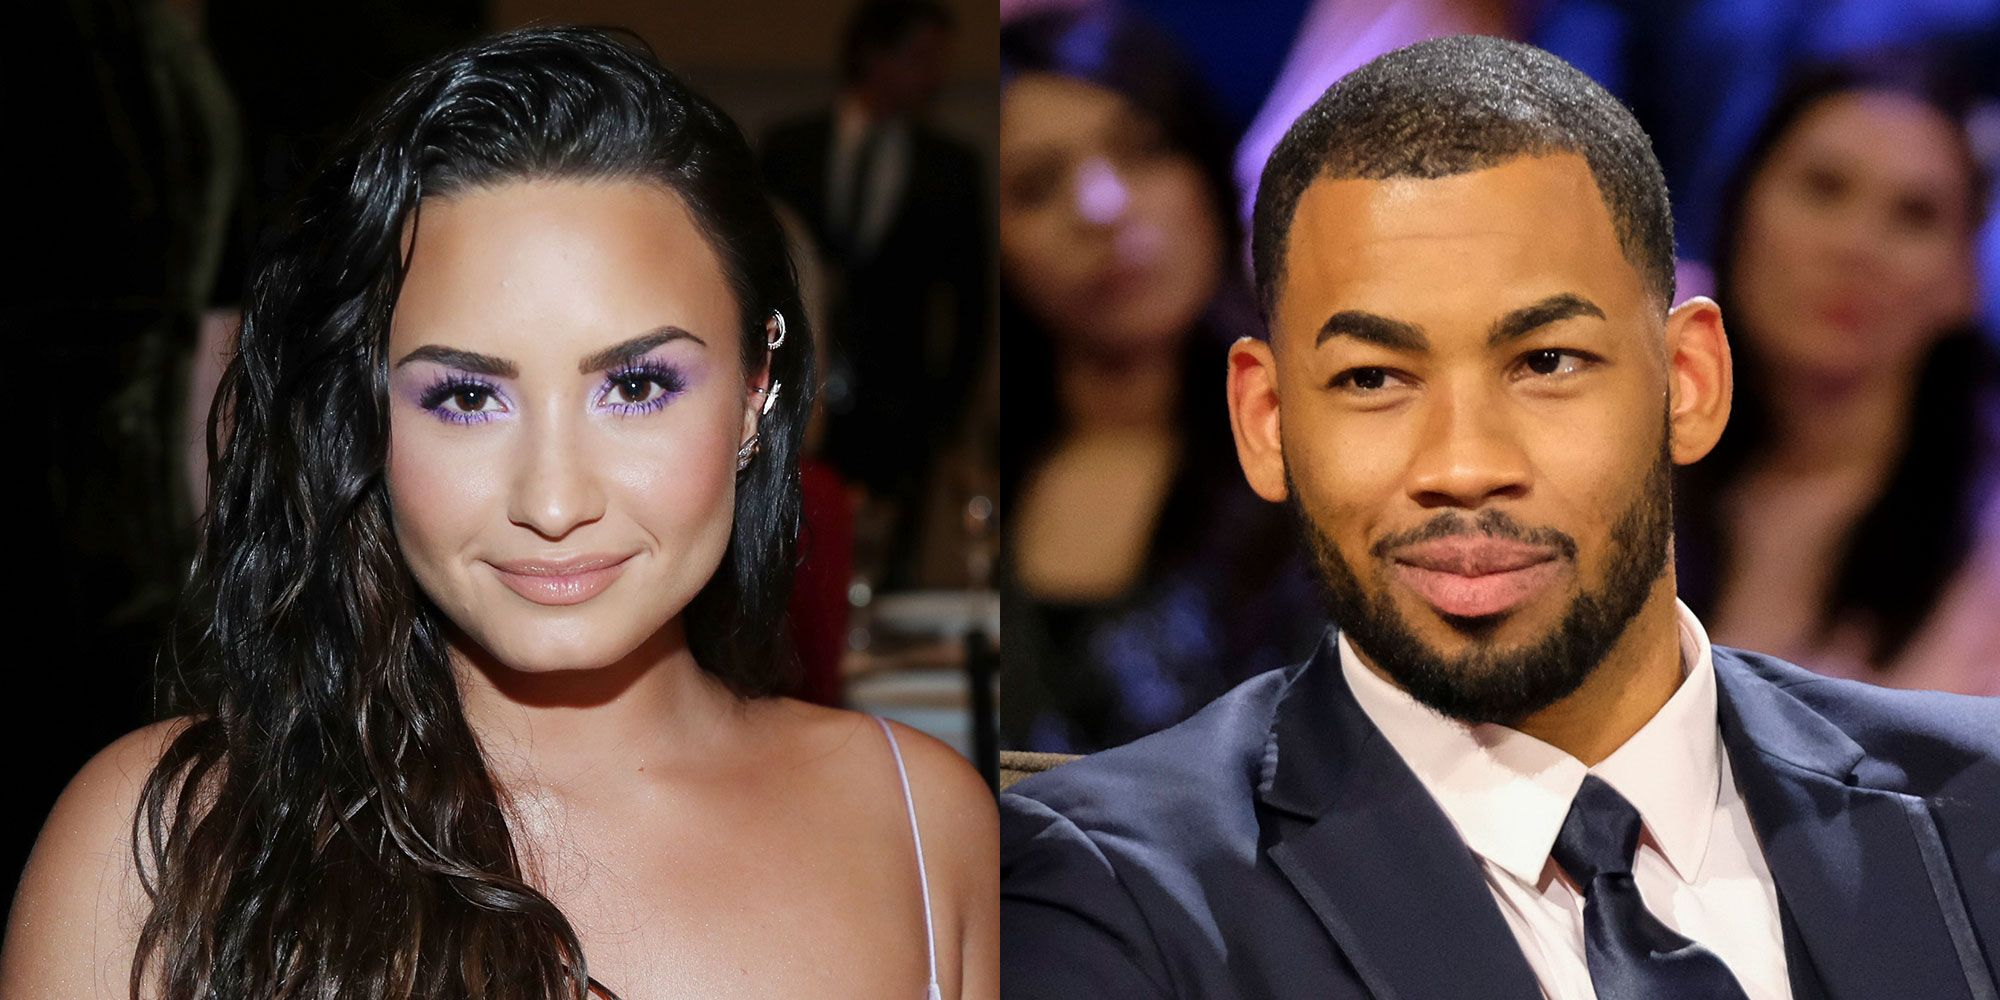 Demi Lovato and Mike Johnson Are Reportedly 'Definitely Into Each Other' and Planning a Second Date